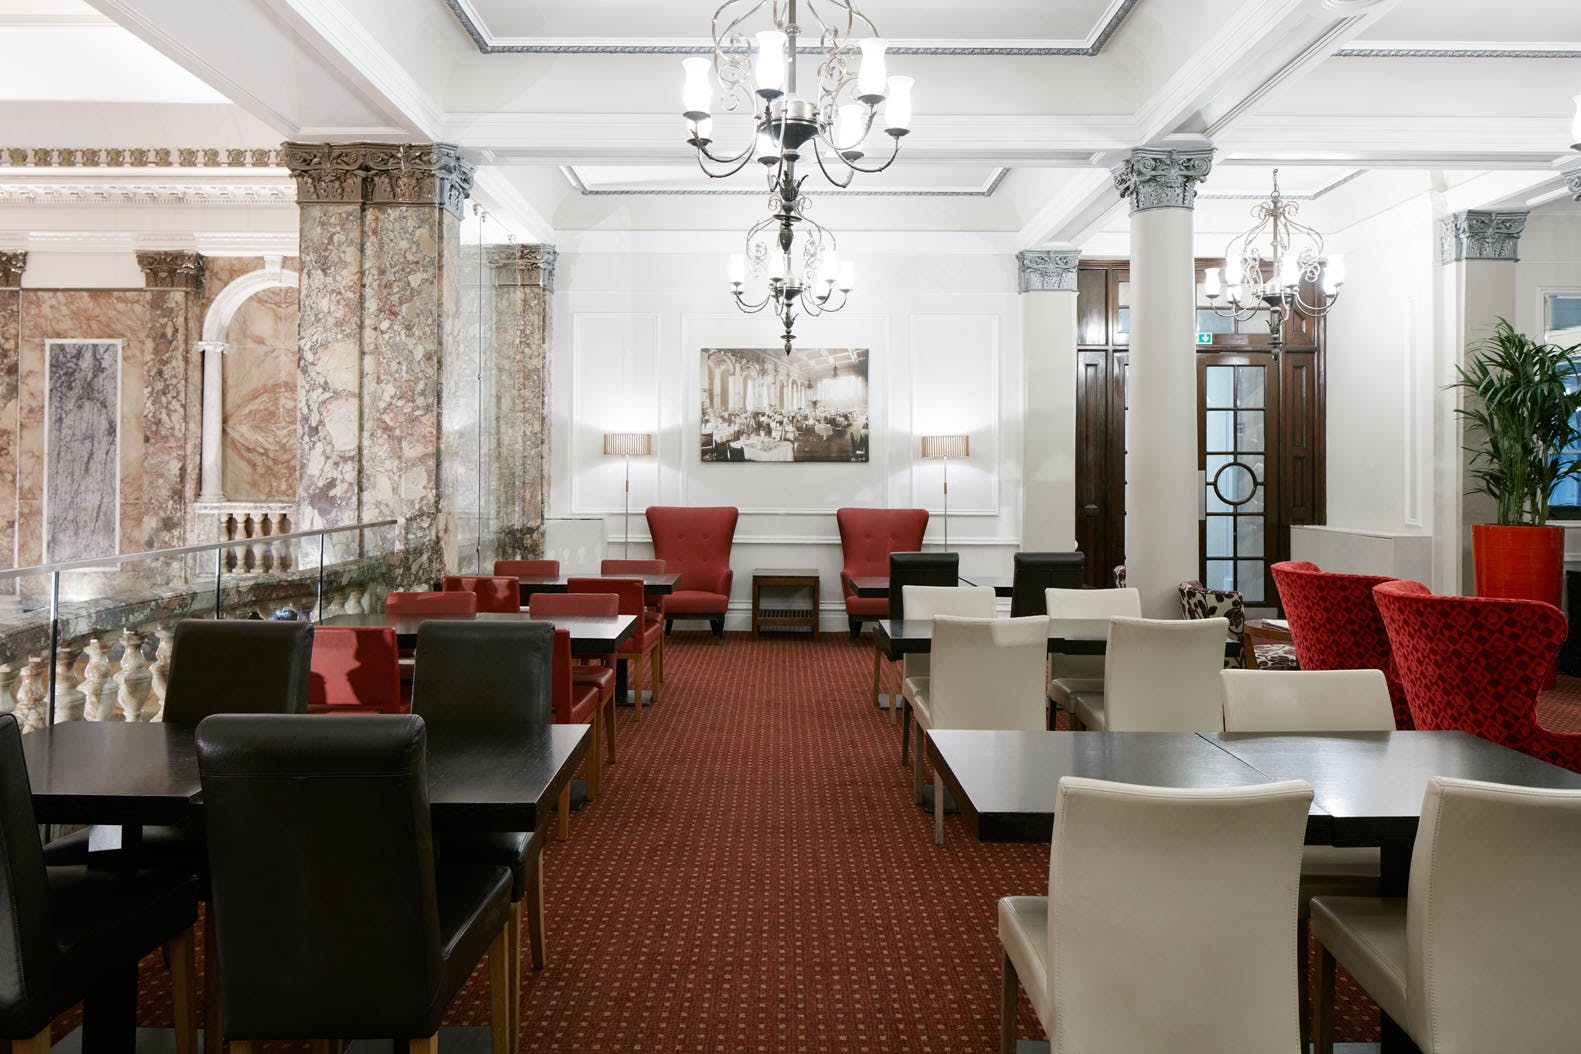 Gallery Lounge at Club Quarters Hotel, Trafalgar Square, London